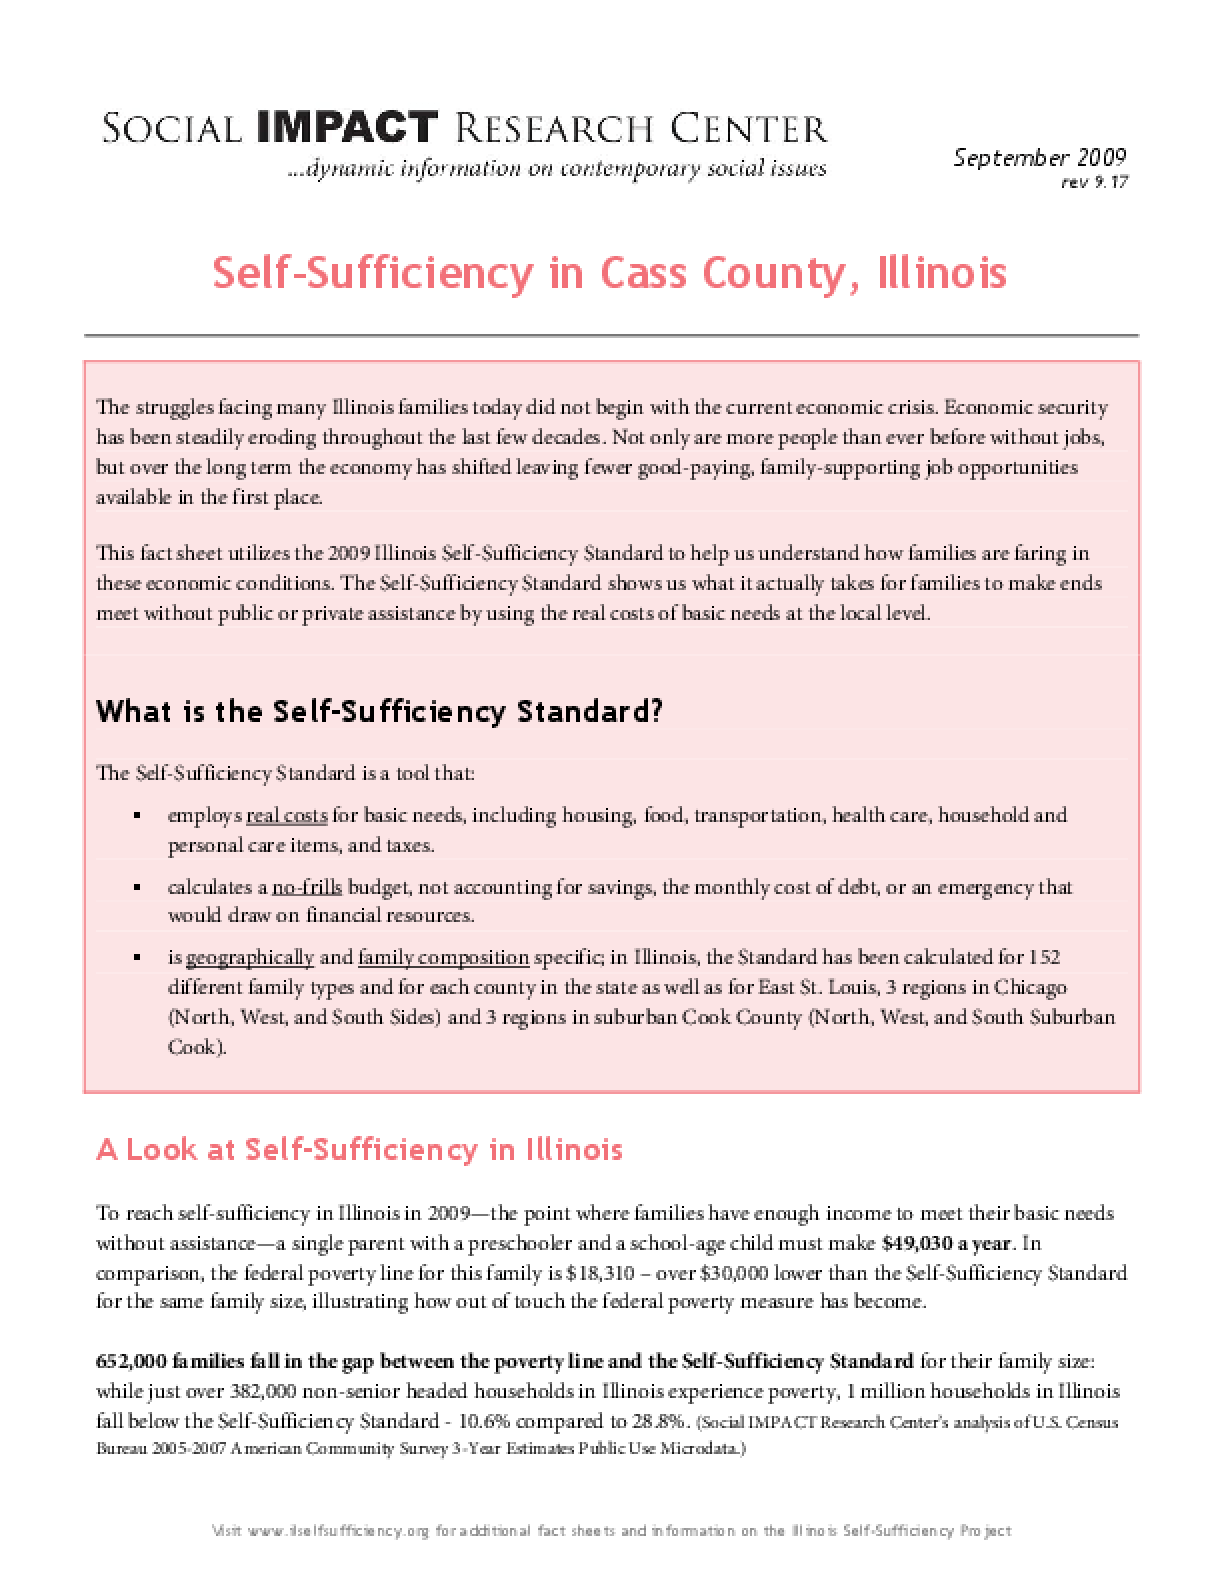 Self-Sufficiency in Cass County, Illinois